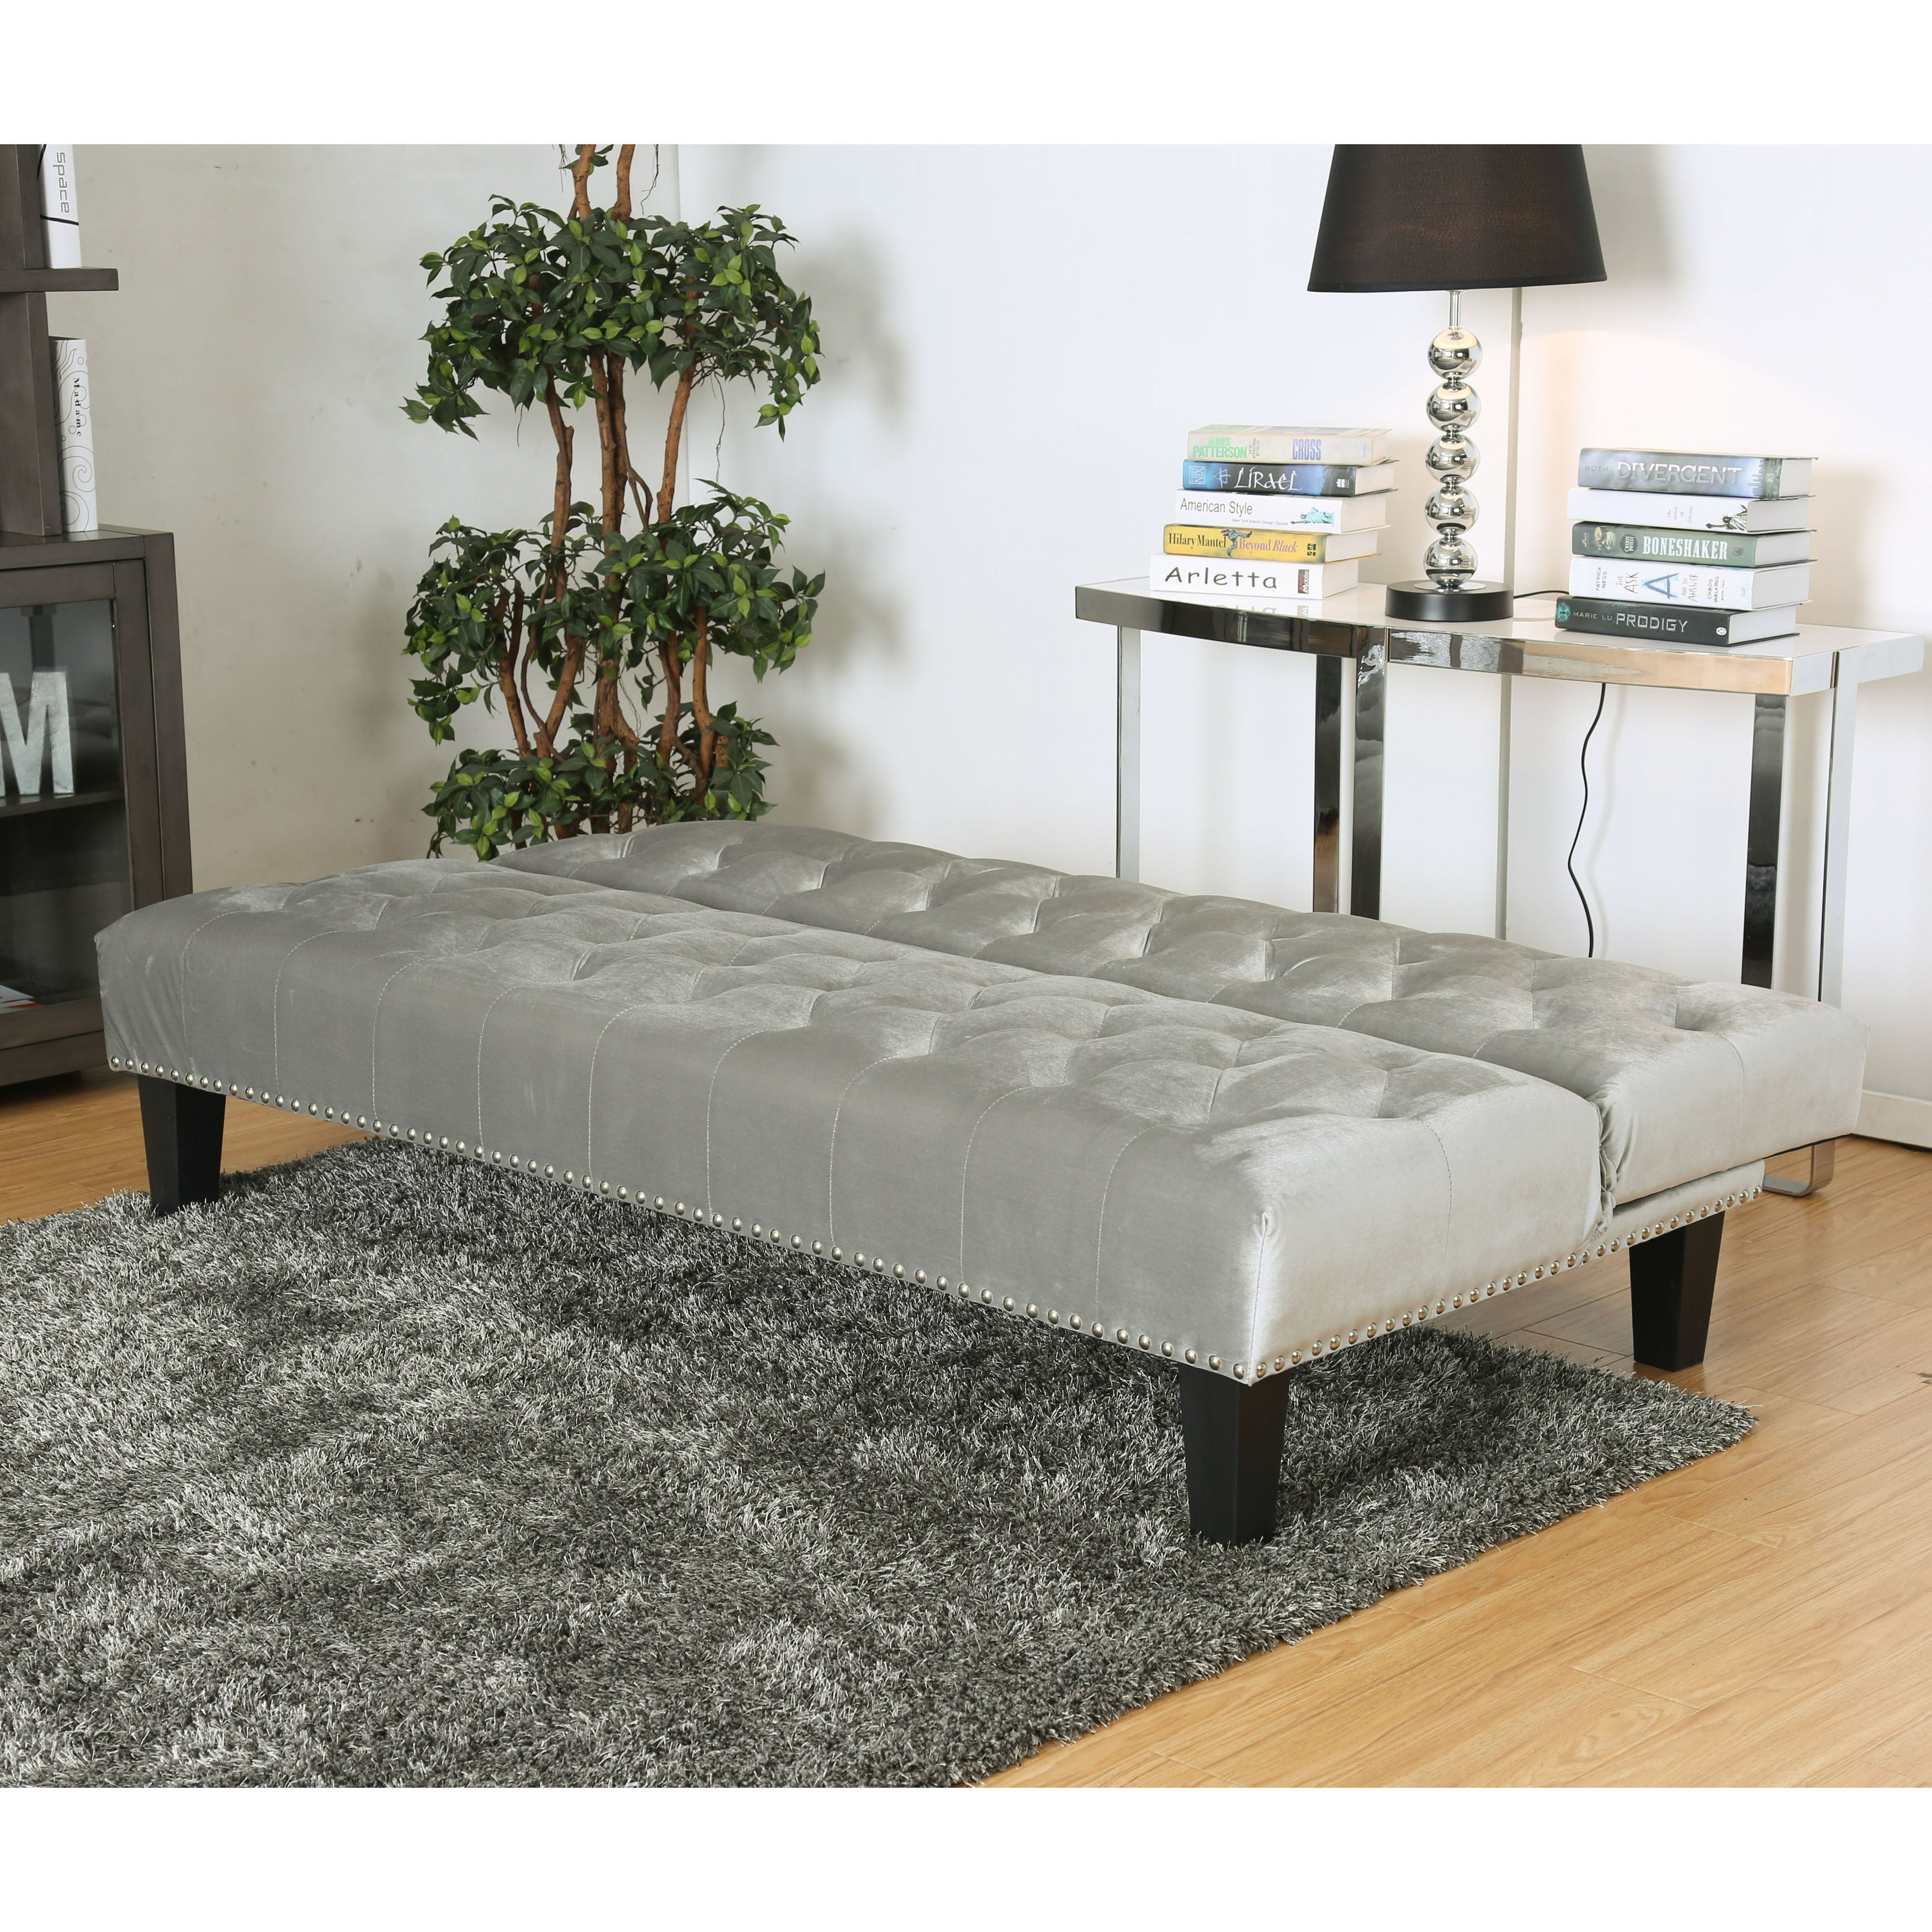 furniture of america yetsy contemporary glam tufted futon sofa   free shipping today   overstock     24374428 furniture of america yetsy contemporary glam tufted futon sofa      rh   overstock